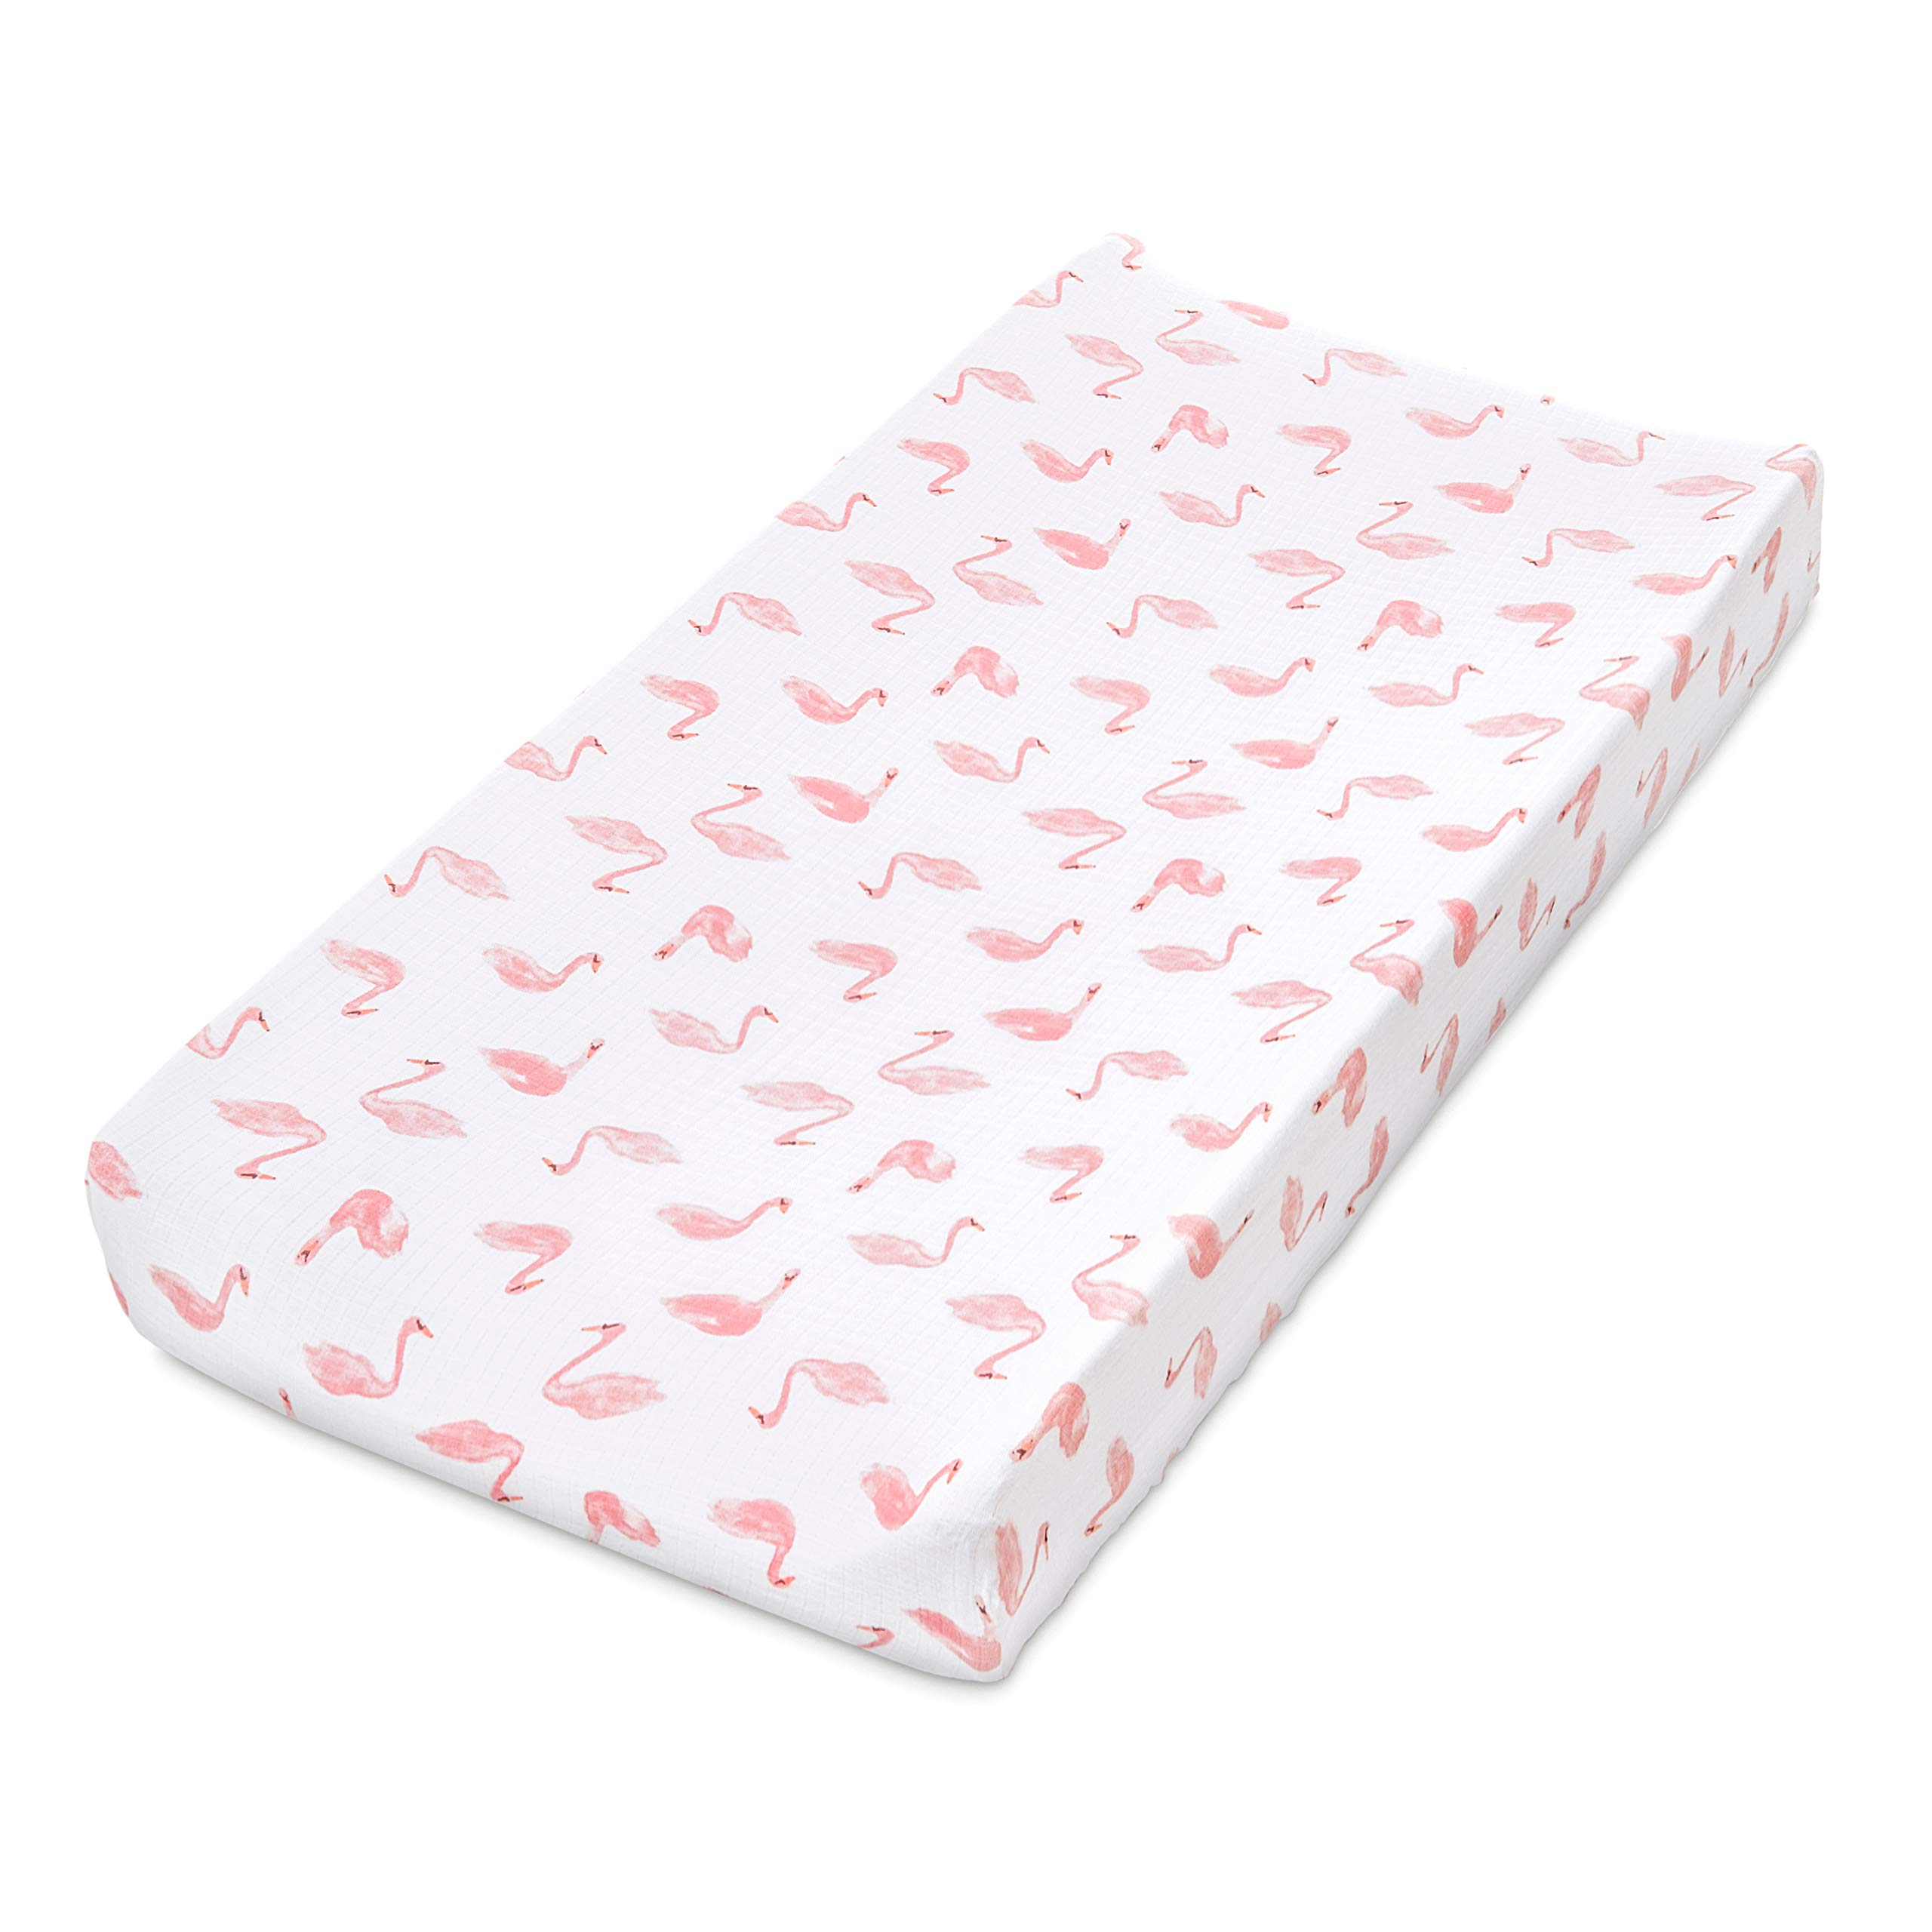 aden by aden + anais Classic Changing Pad Cover, 100% Cotton Muslin, Super Soft, Breathable, Tailored Snug Fit, Single, Briar Rose - Swans by aden by aden + anais